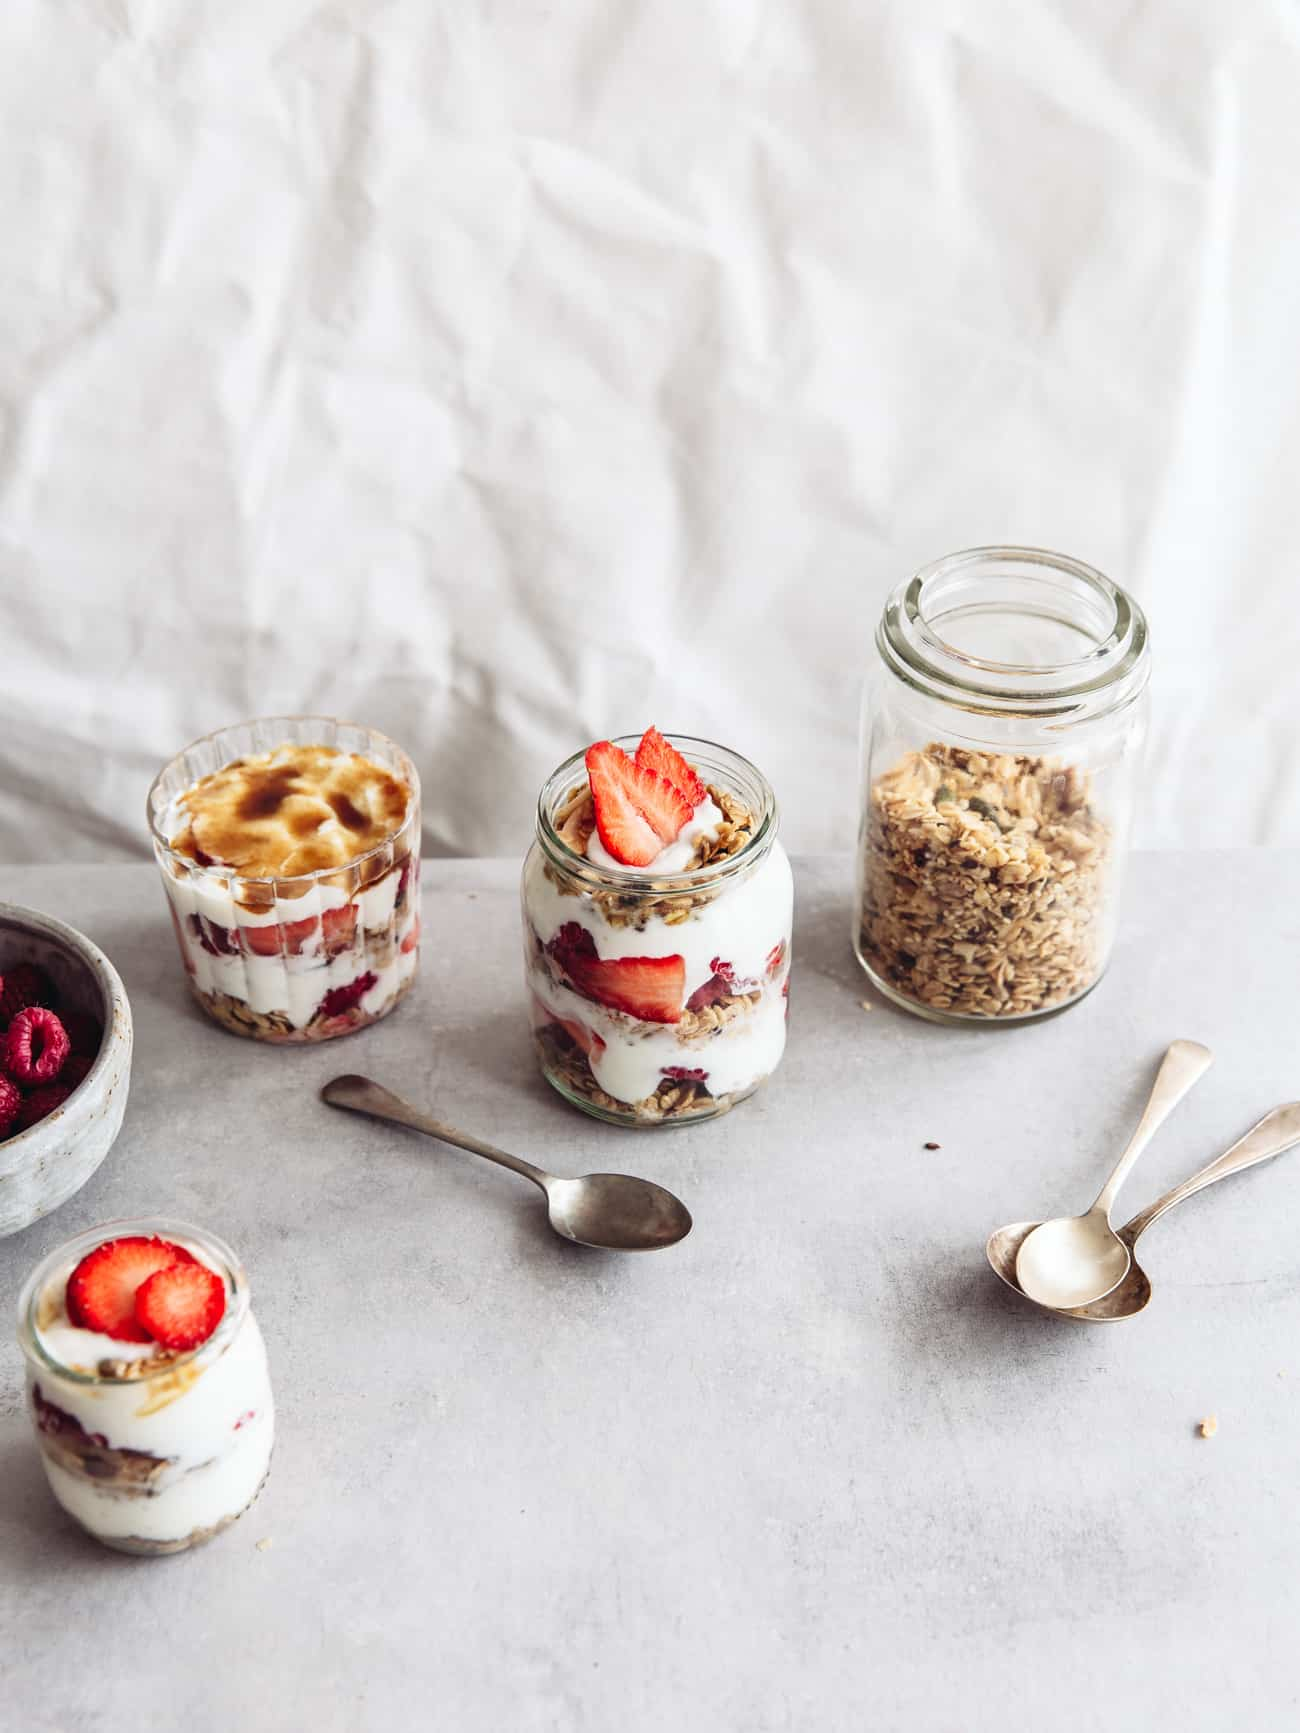 Three layered yoghurt brulees with berries and a jar of granola